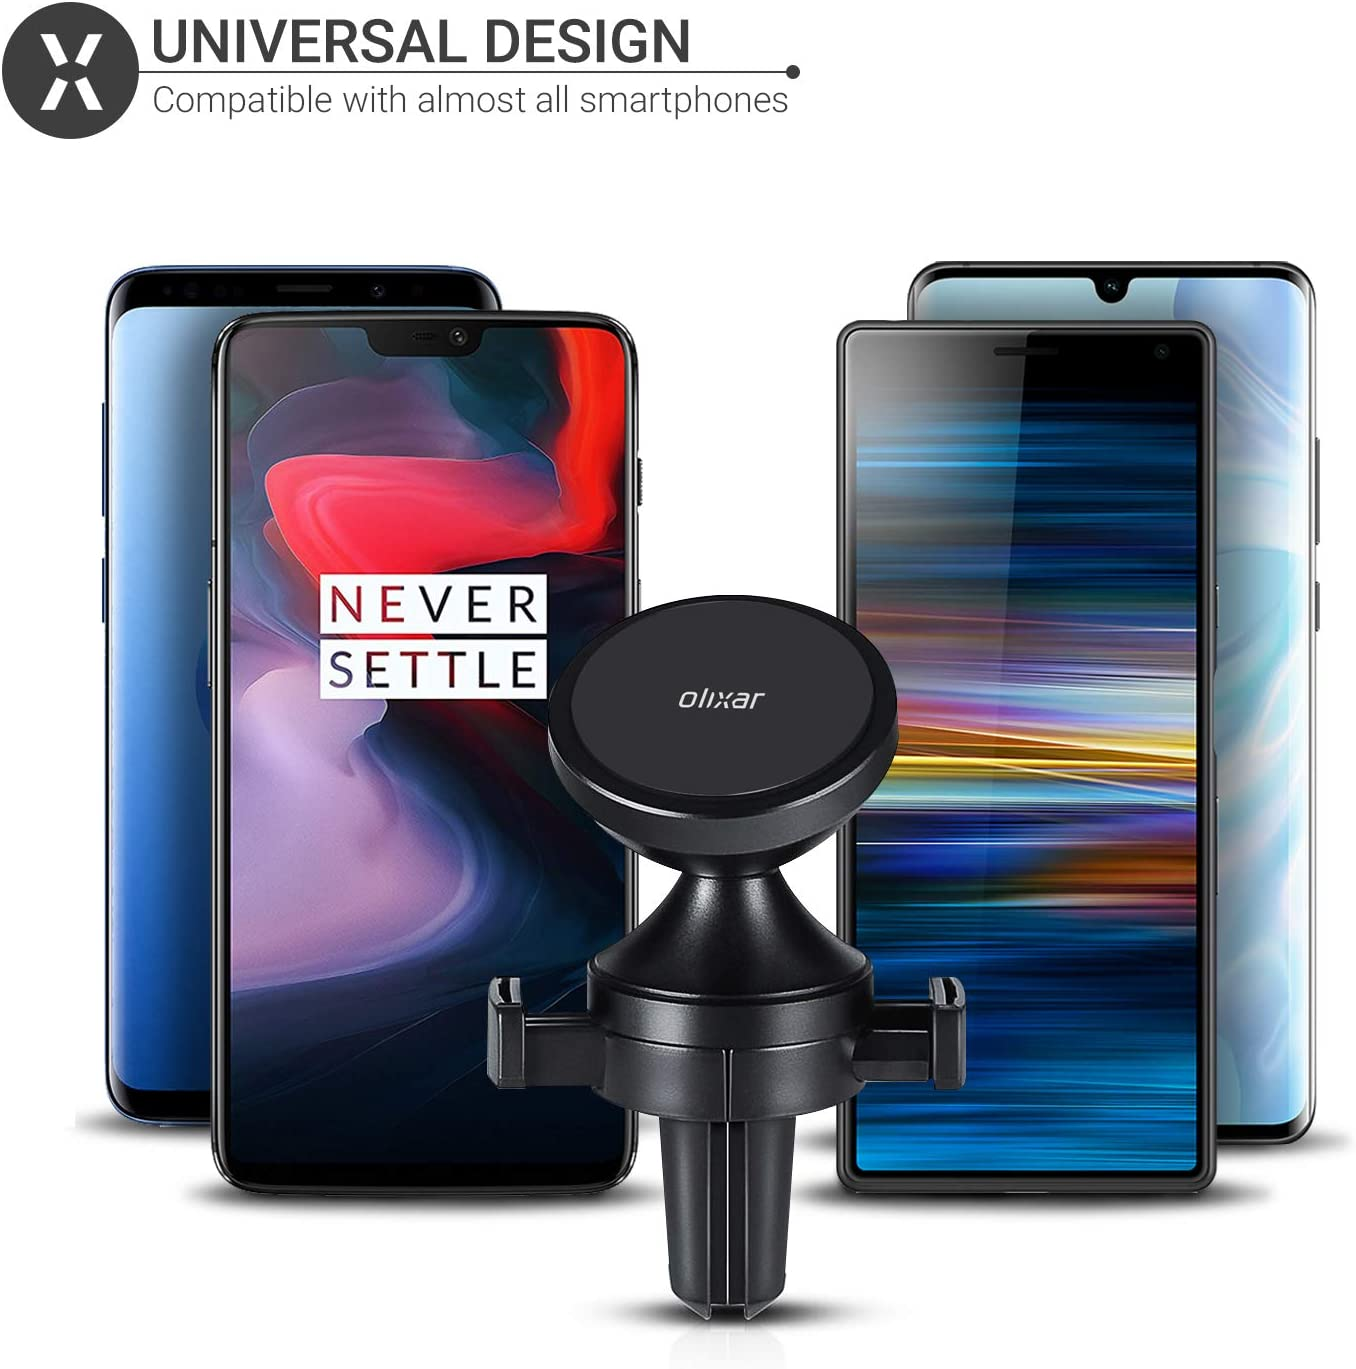 Black for Car Air Vent Mount with 360 Degree Rotation Olixar Magnetic Mount Air Vent Holder Samsung Galaxy Motorola Huawei Devices and More Universal Fit for iPhone